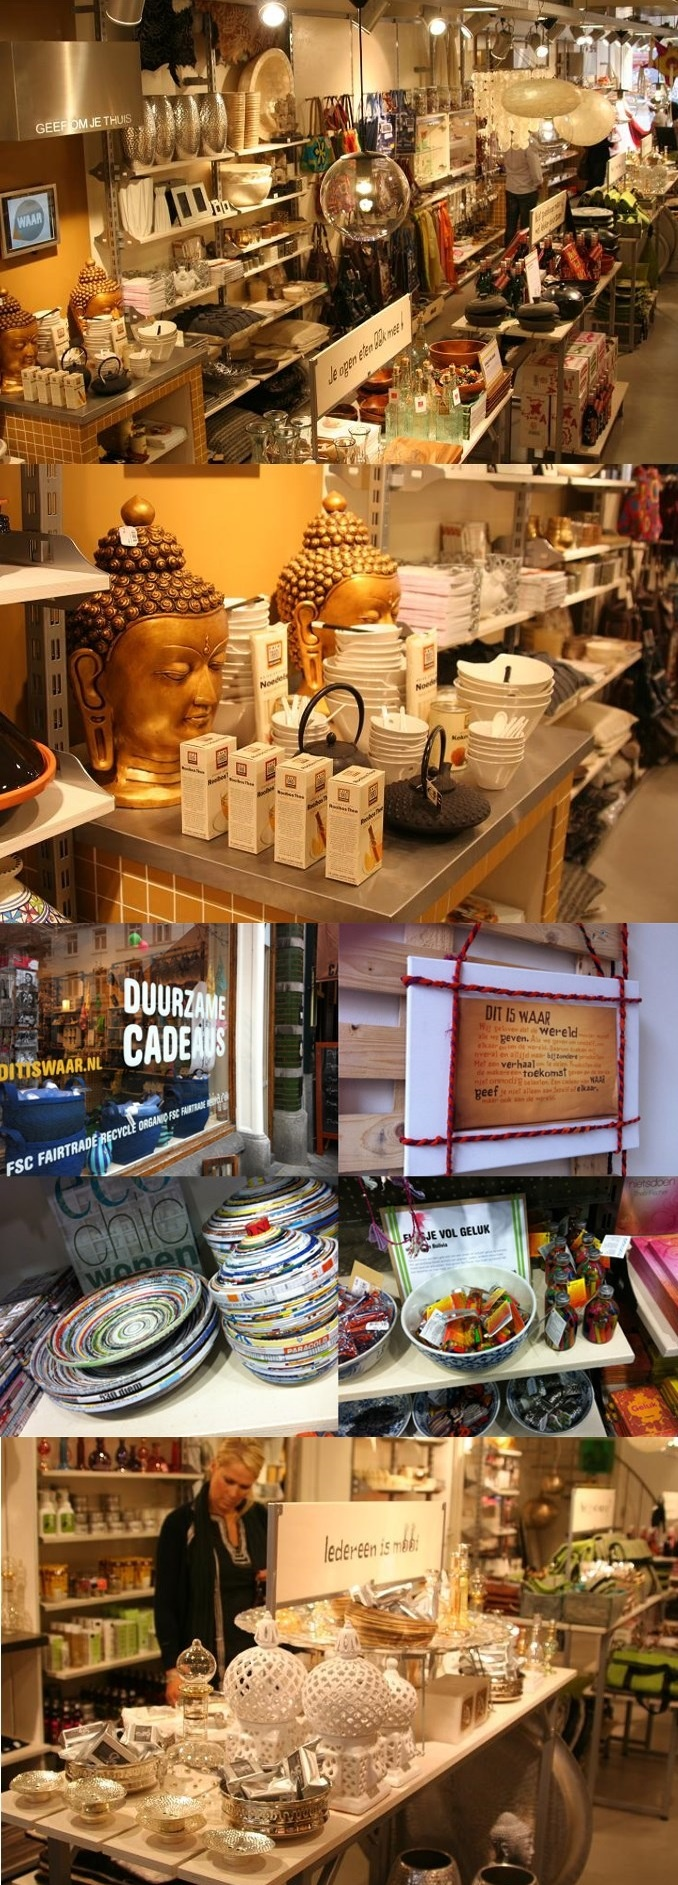 WAAR, a gift shop in Amsterdam with durable, foreign or recycled fair trade products. You'll always find here a good present (heiligeweg 45) http://www.ditiswaar.nl/